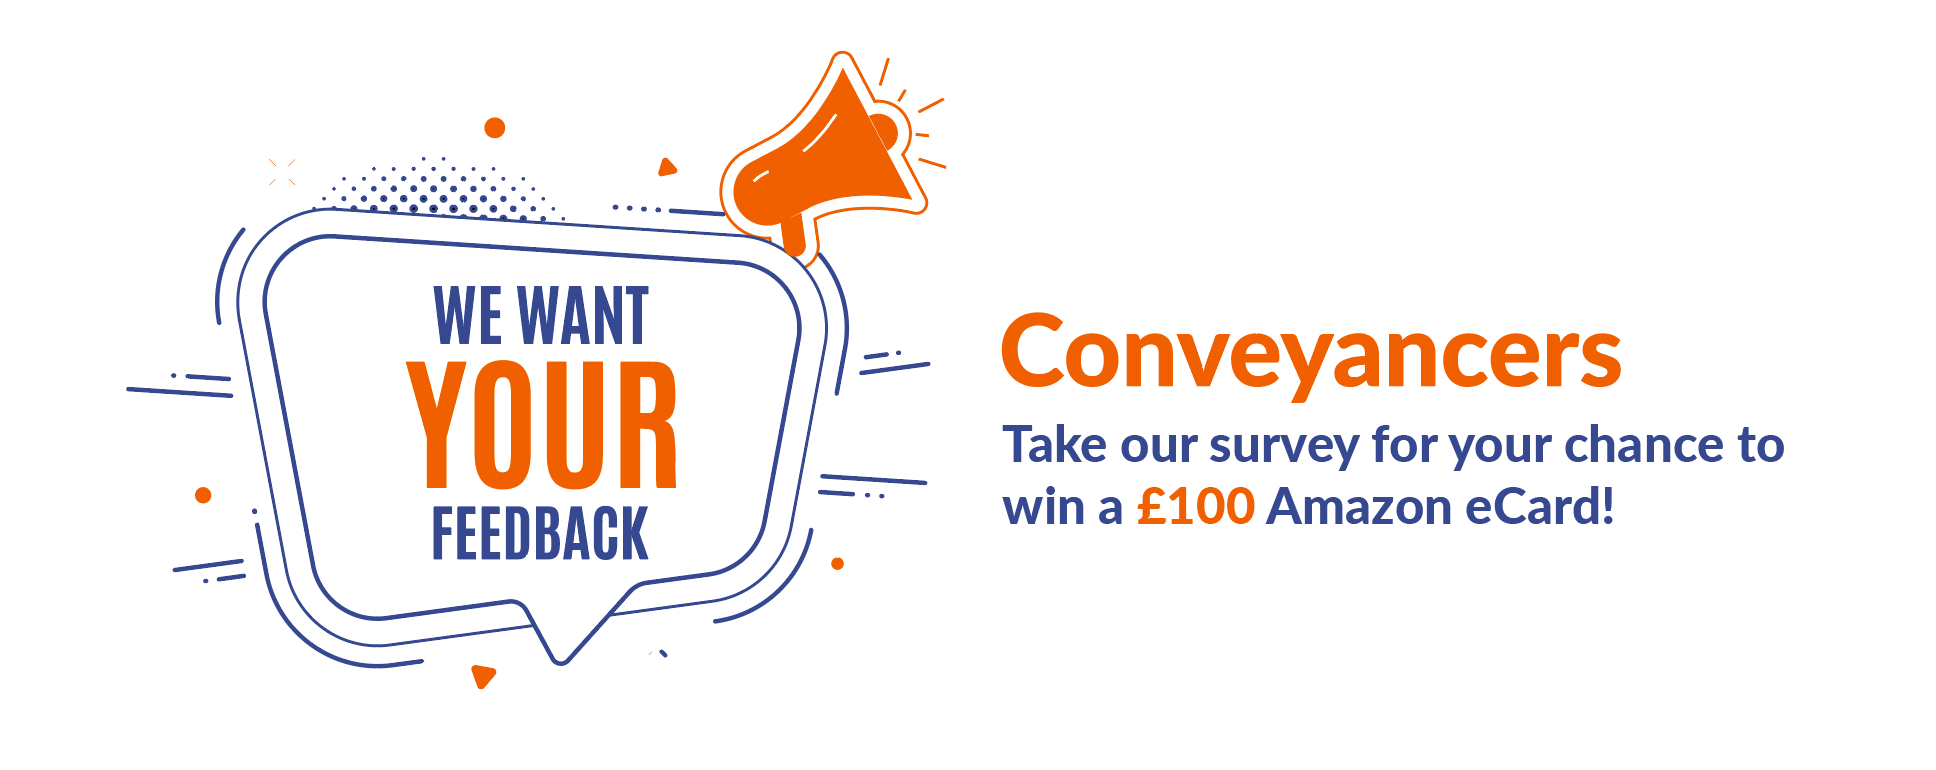 Take our survey for the chance to win a £100 Amazon eCard header image